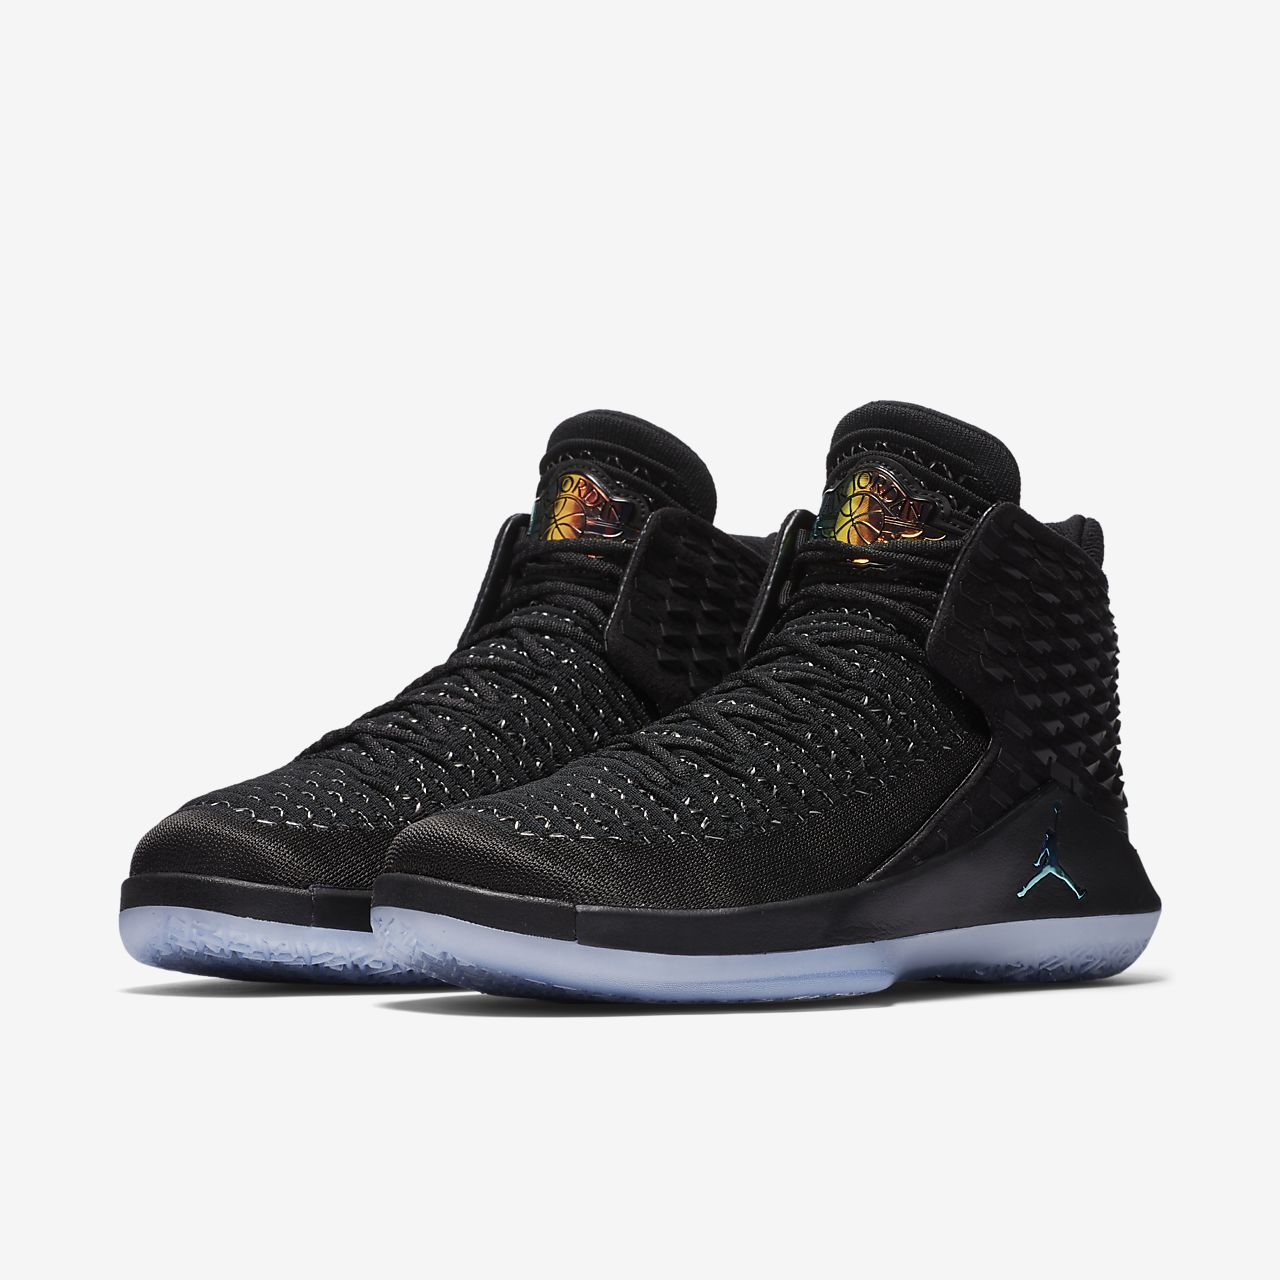 ... Air Jordan XXXII Men's Basketball Shoe